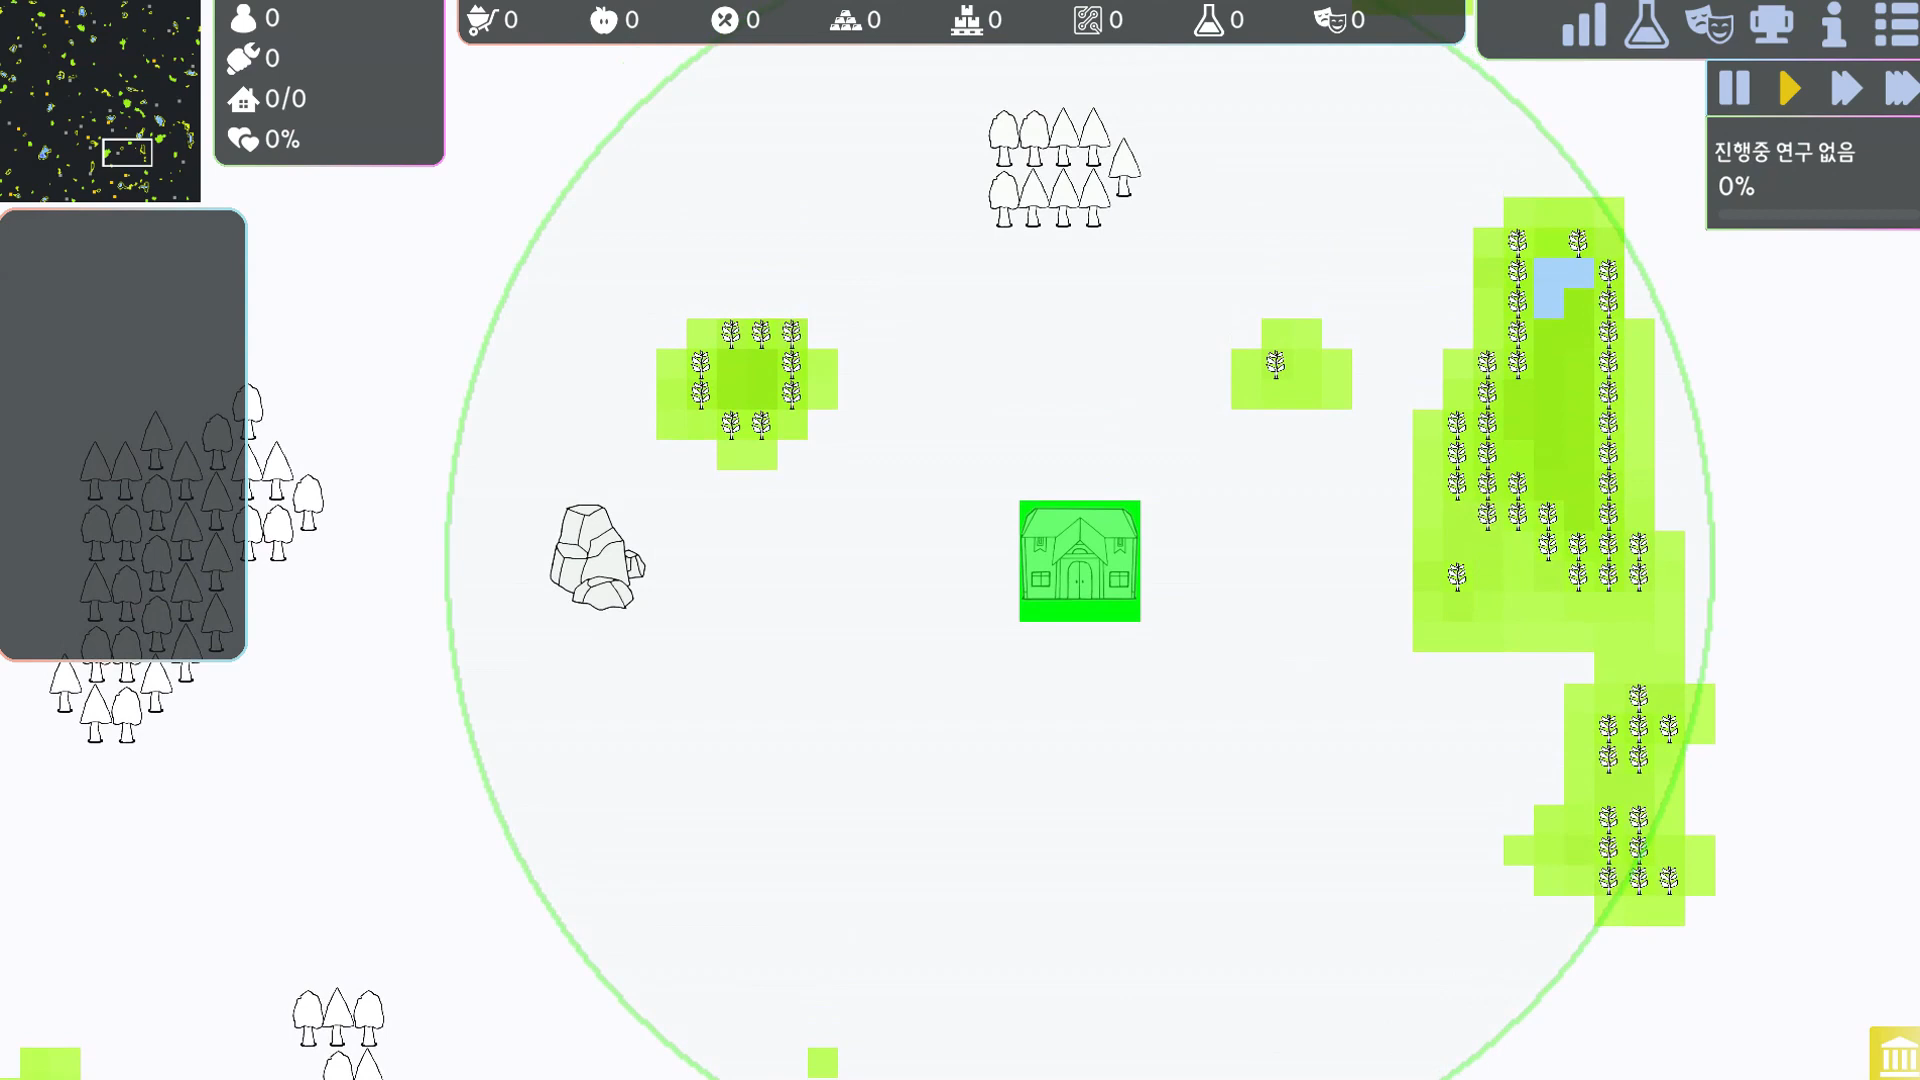 Crowded Blue Dot _ City building tycoon Gameplay 0-21 screenshot.png